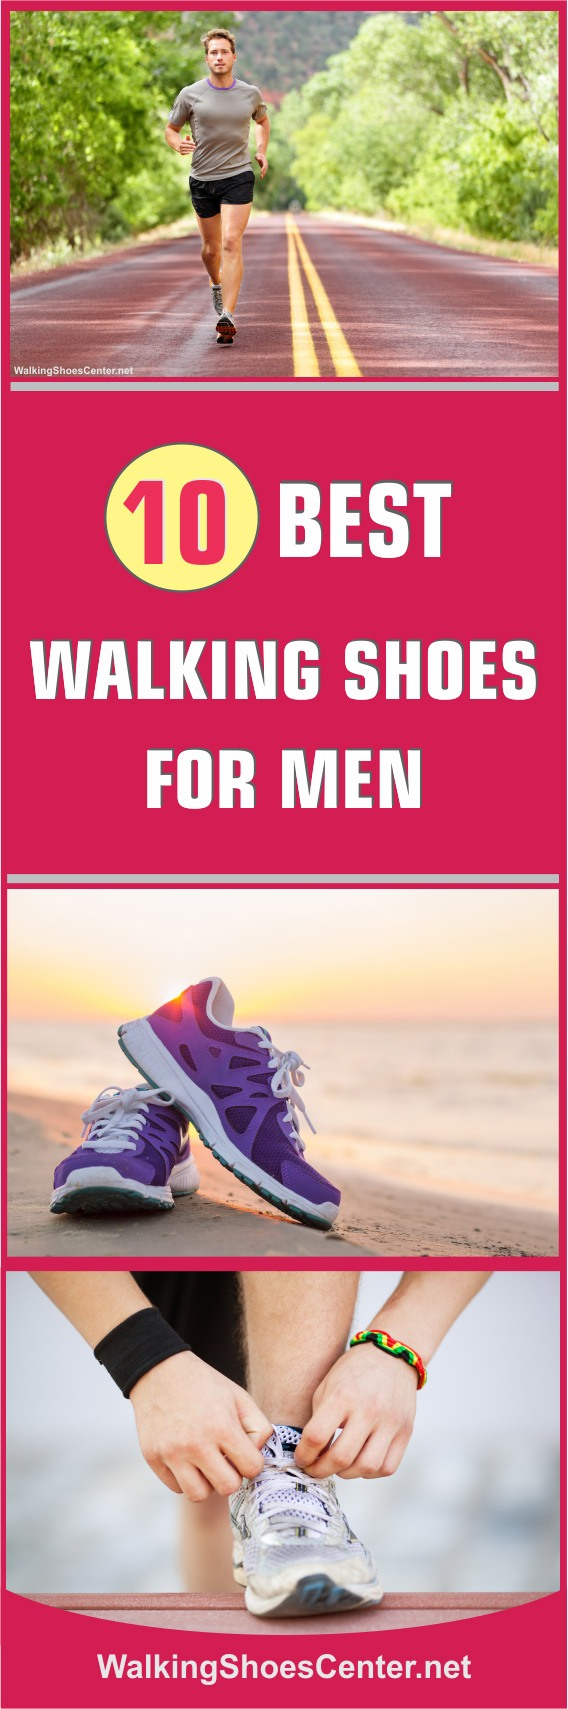 Walking shoes,Walking shoes for men, Best men's walking shoes, Best walking shoes for men, Top rated walking shoes for men, Comfortable walking shoes. Website: Https://WalkingShoesCenter.net